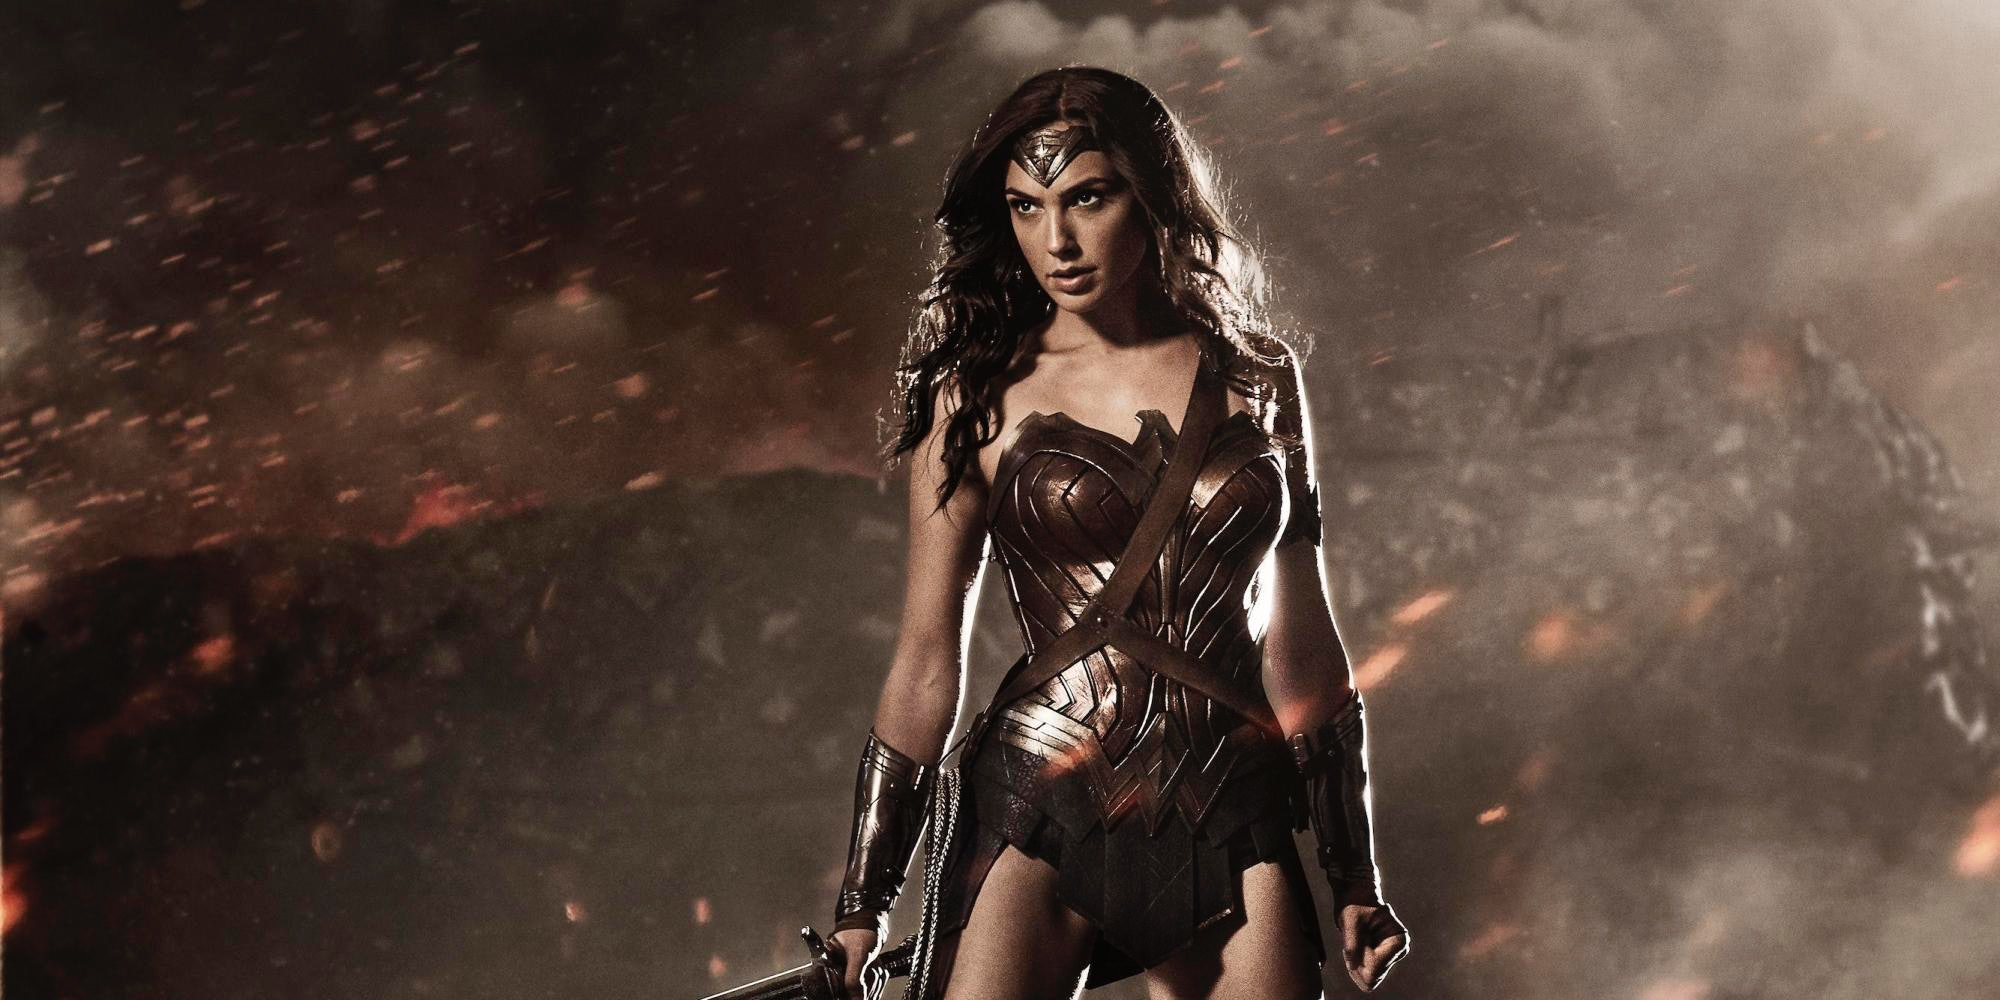 Gal Gadot addresses the issue of Wonder Woman's sexuality